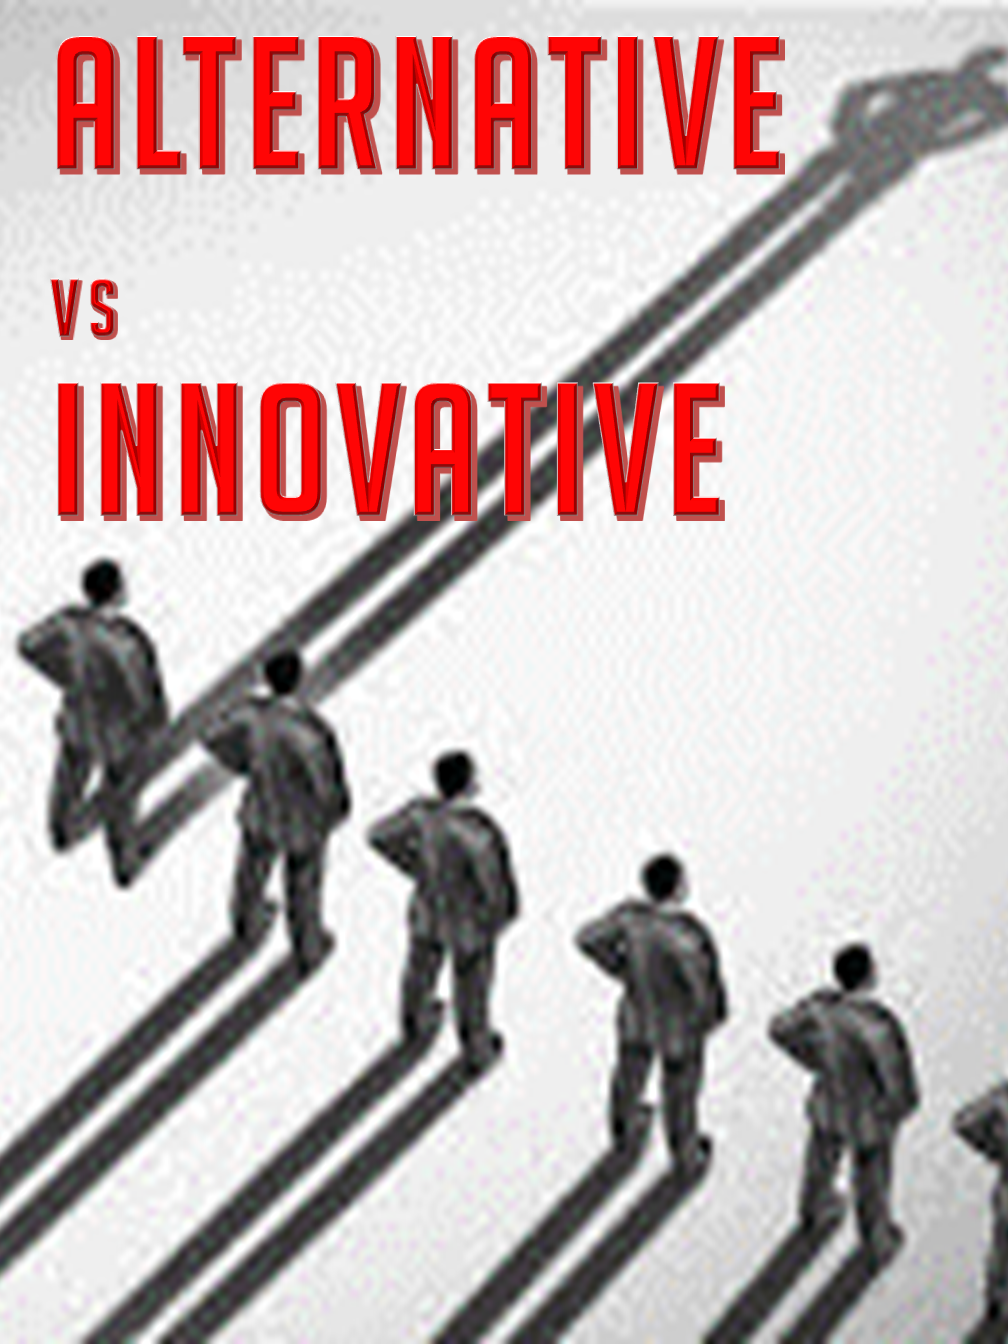 Alternative vs Innovative